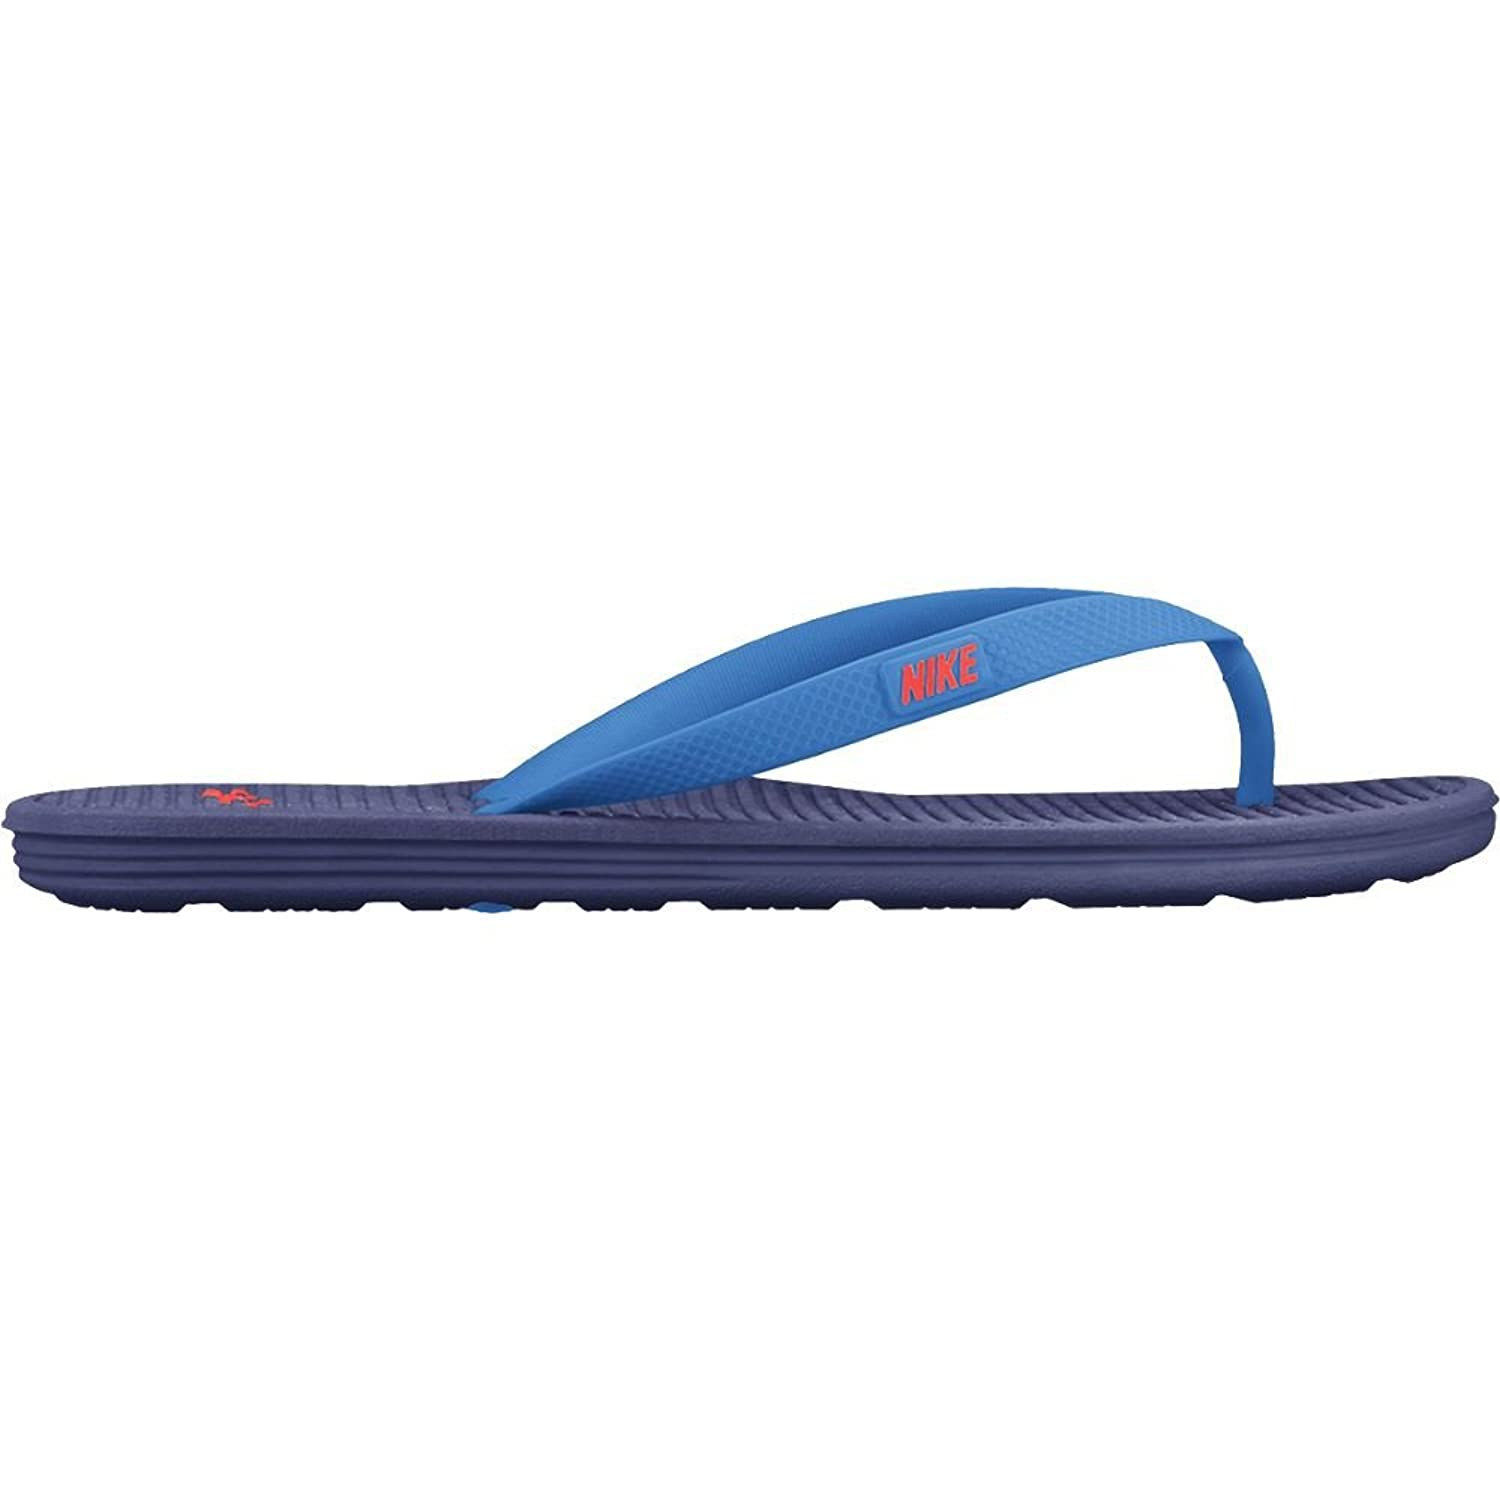 Nike Mens Solarsoft Thong 2 Synthetic Sandals